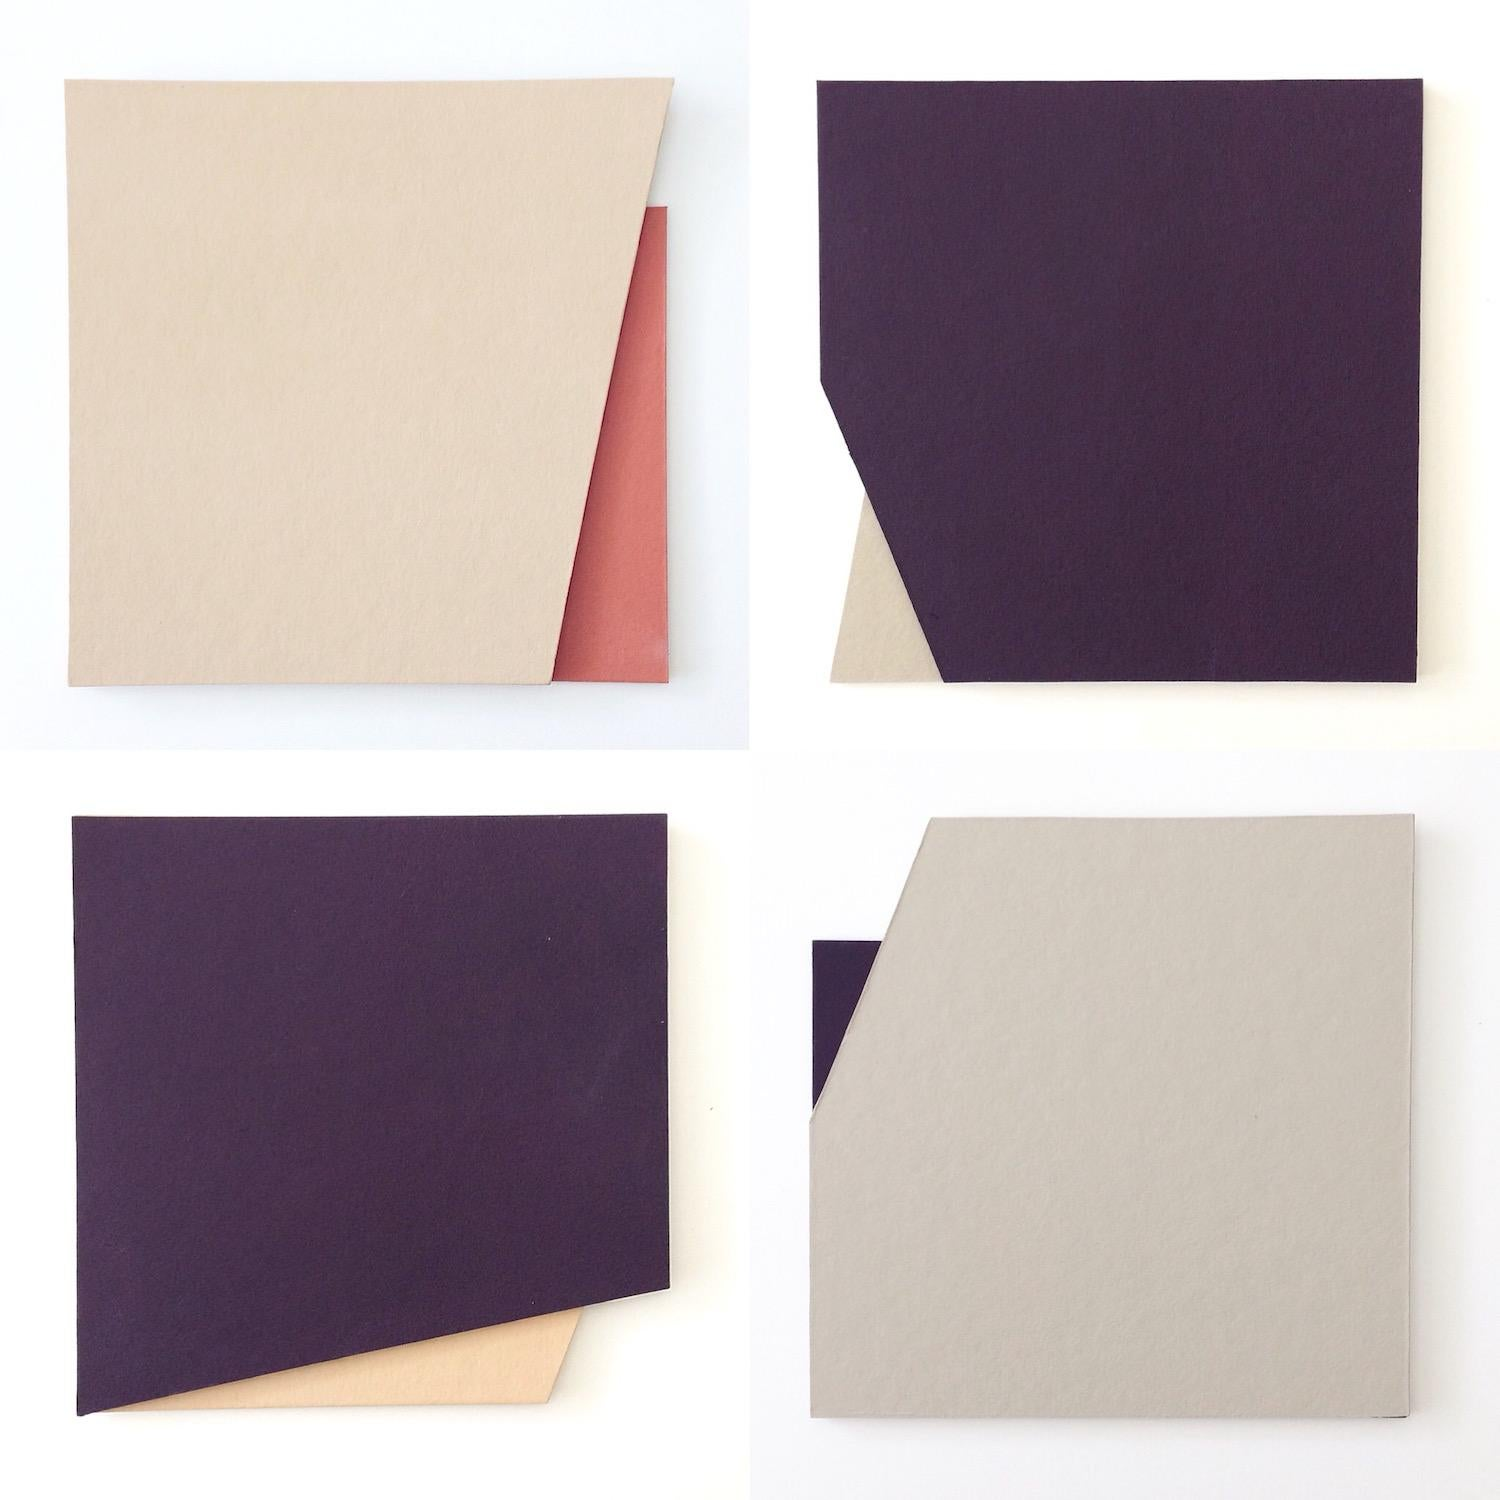 'Cut-out 20': Four Minimal Hard Edge Abstract Paintings by Laura Jane Scott